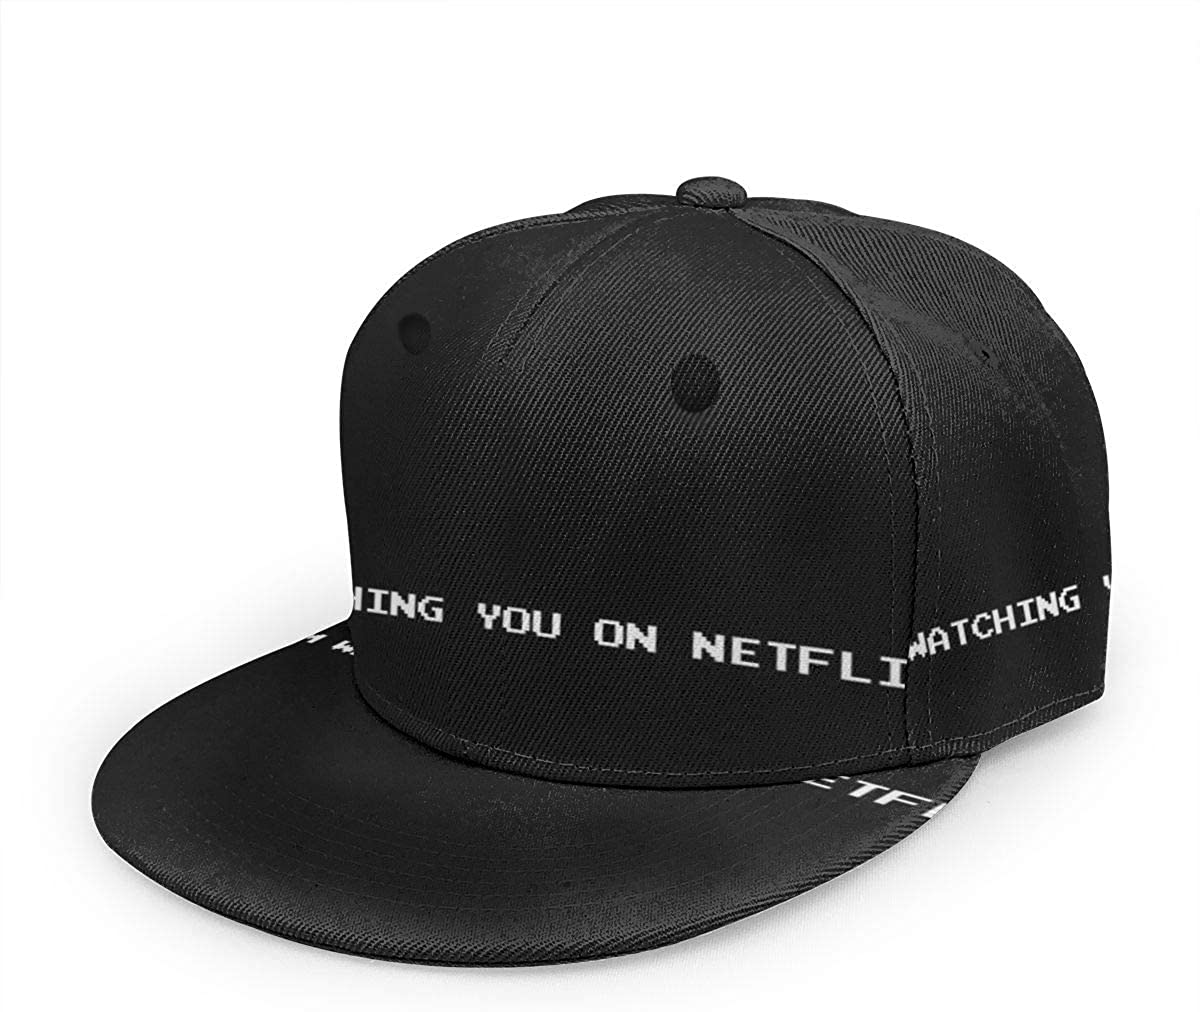 Black Mirror Bandersnatch Im Watching You On Netflix -Unisex Baseball Cap Printed Fashion Sport Pop Baseball Cap